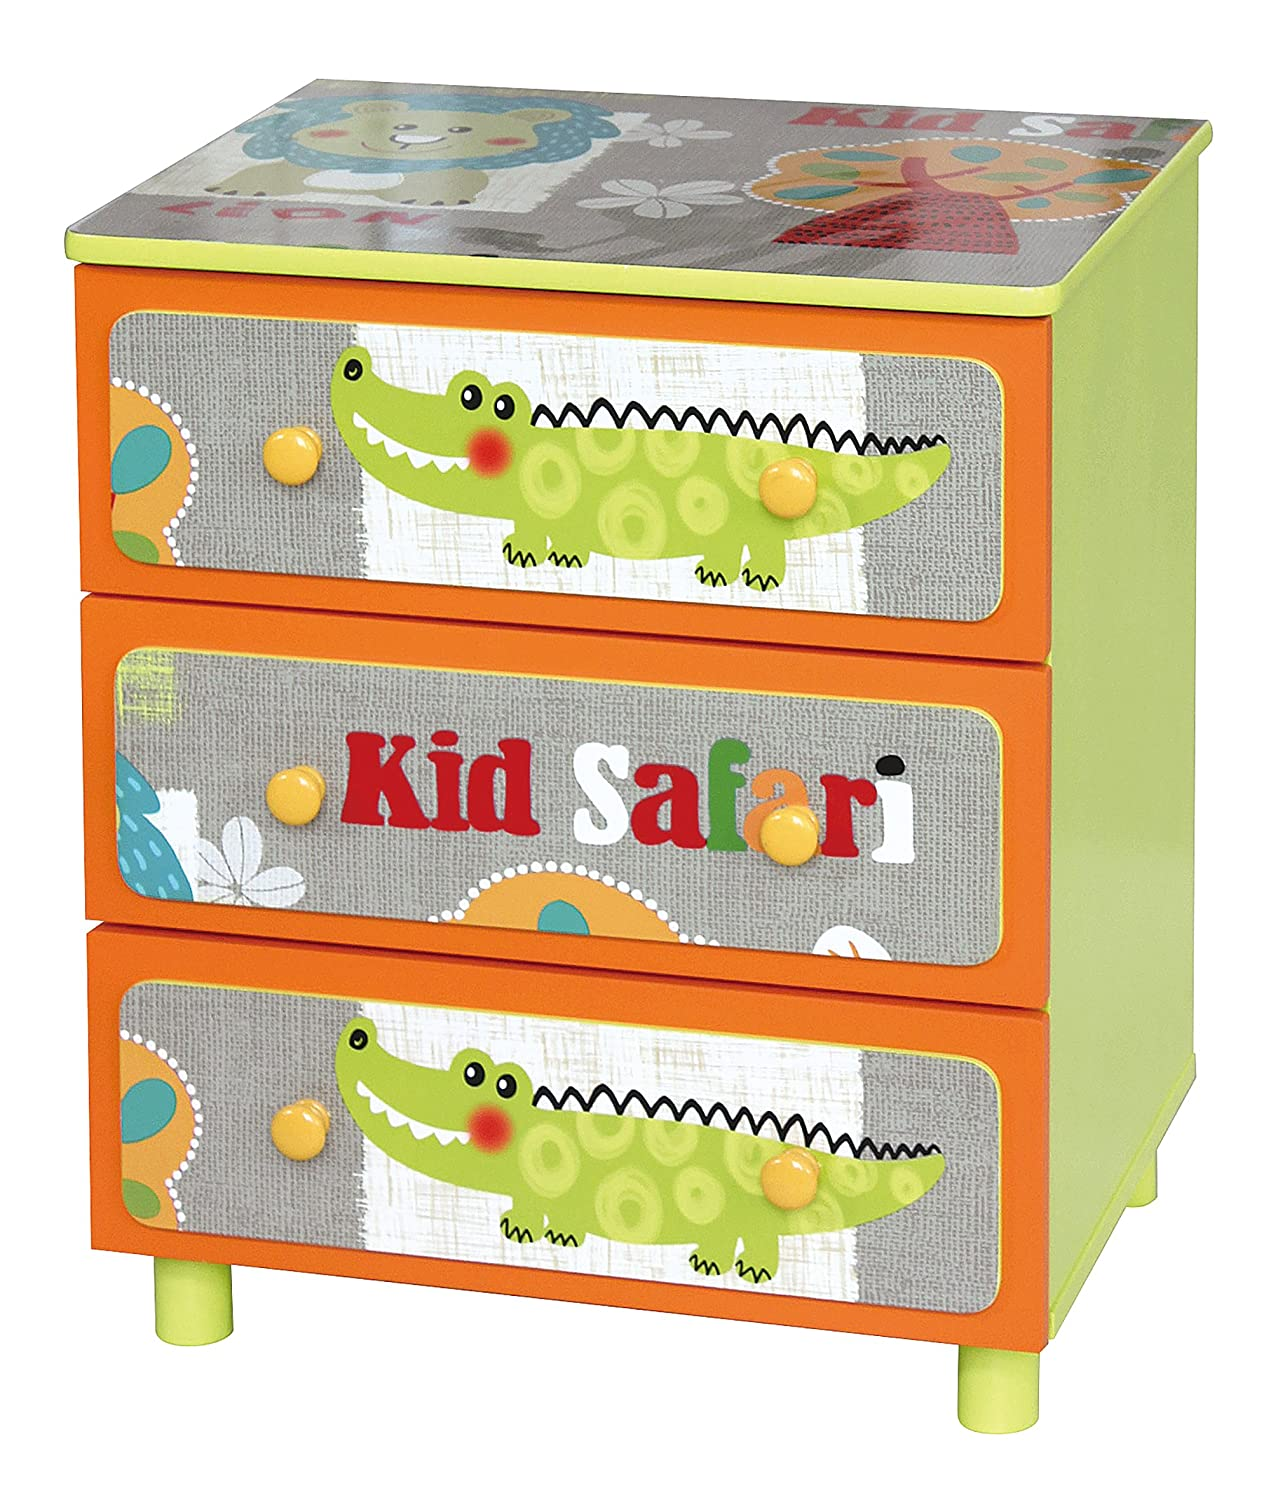 Liberty House Toys TF4801 Kid Safari 7, 6 cm cassettiera